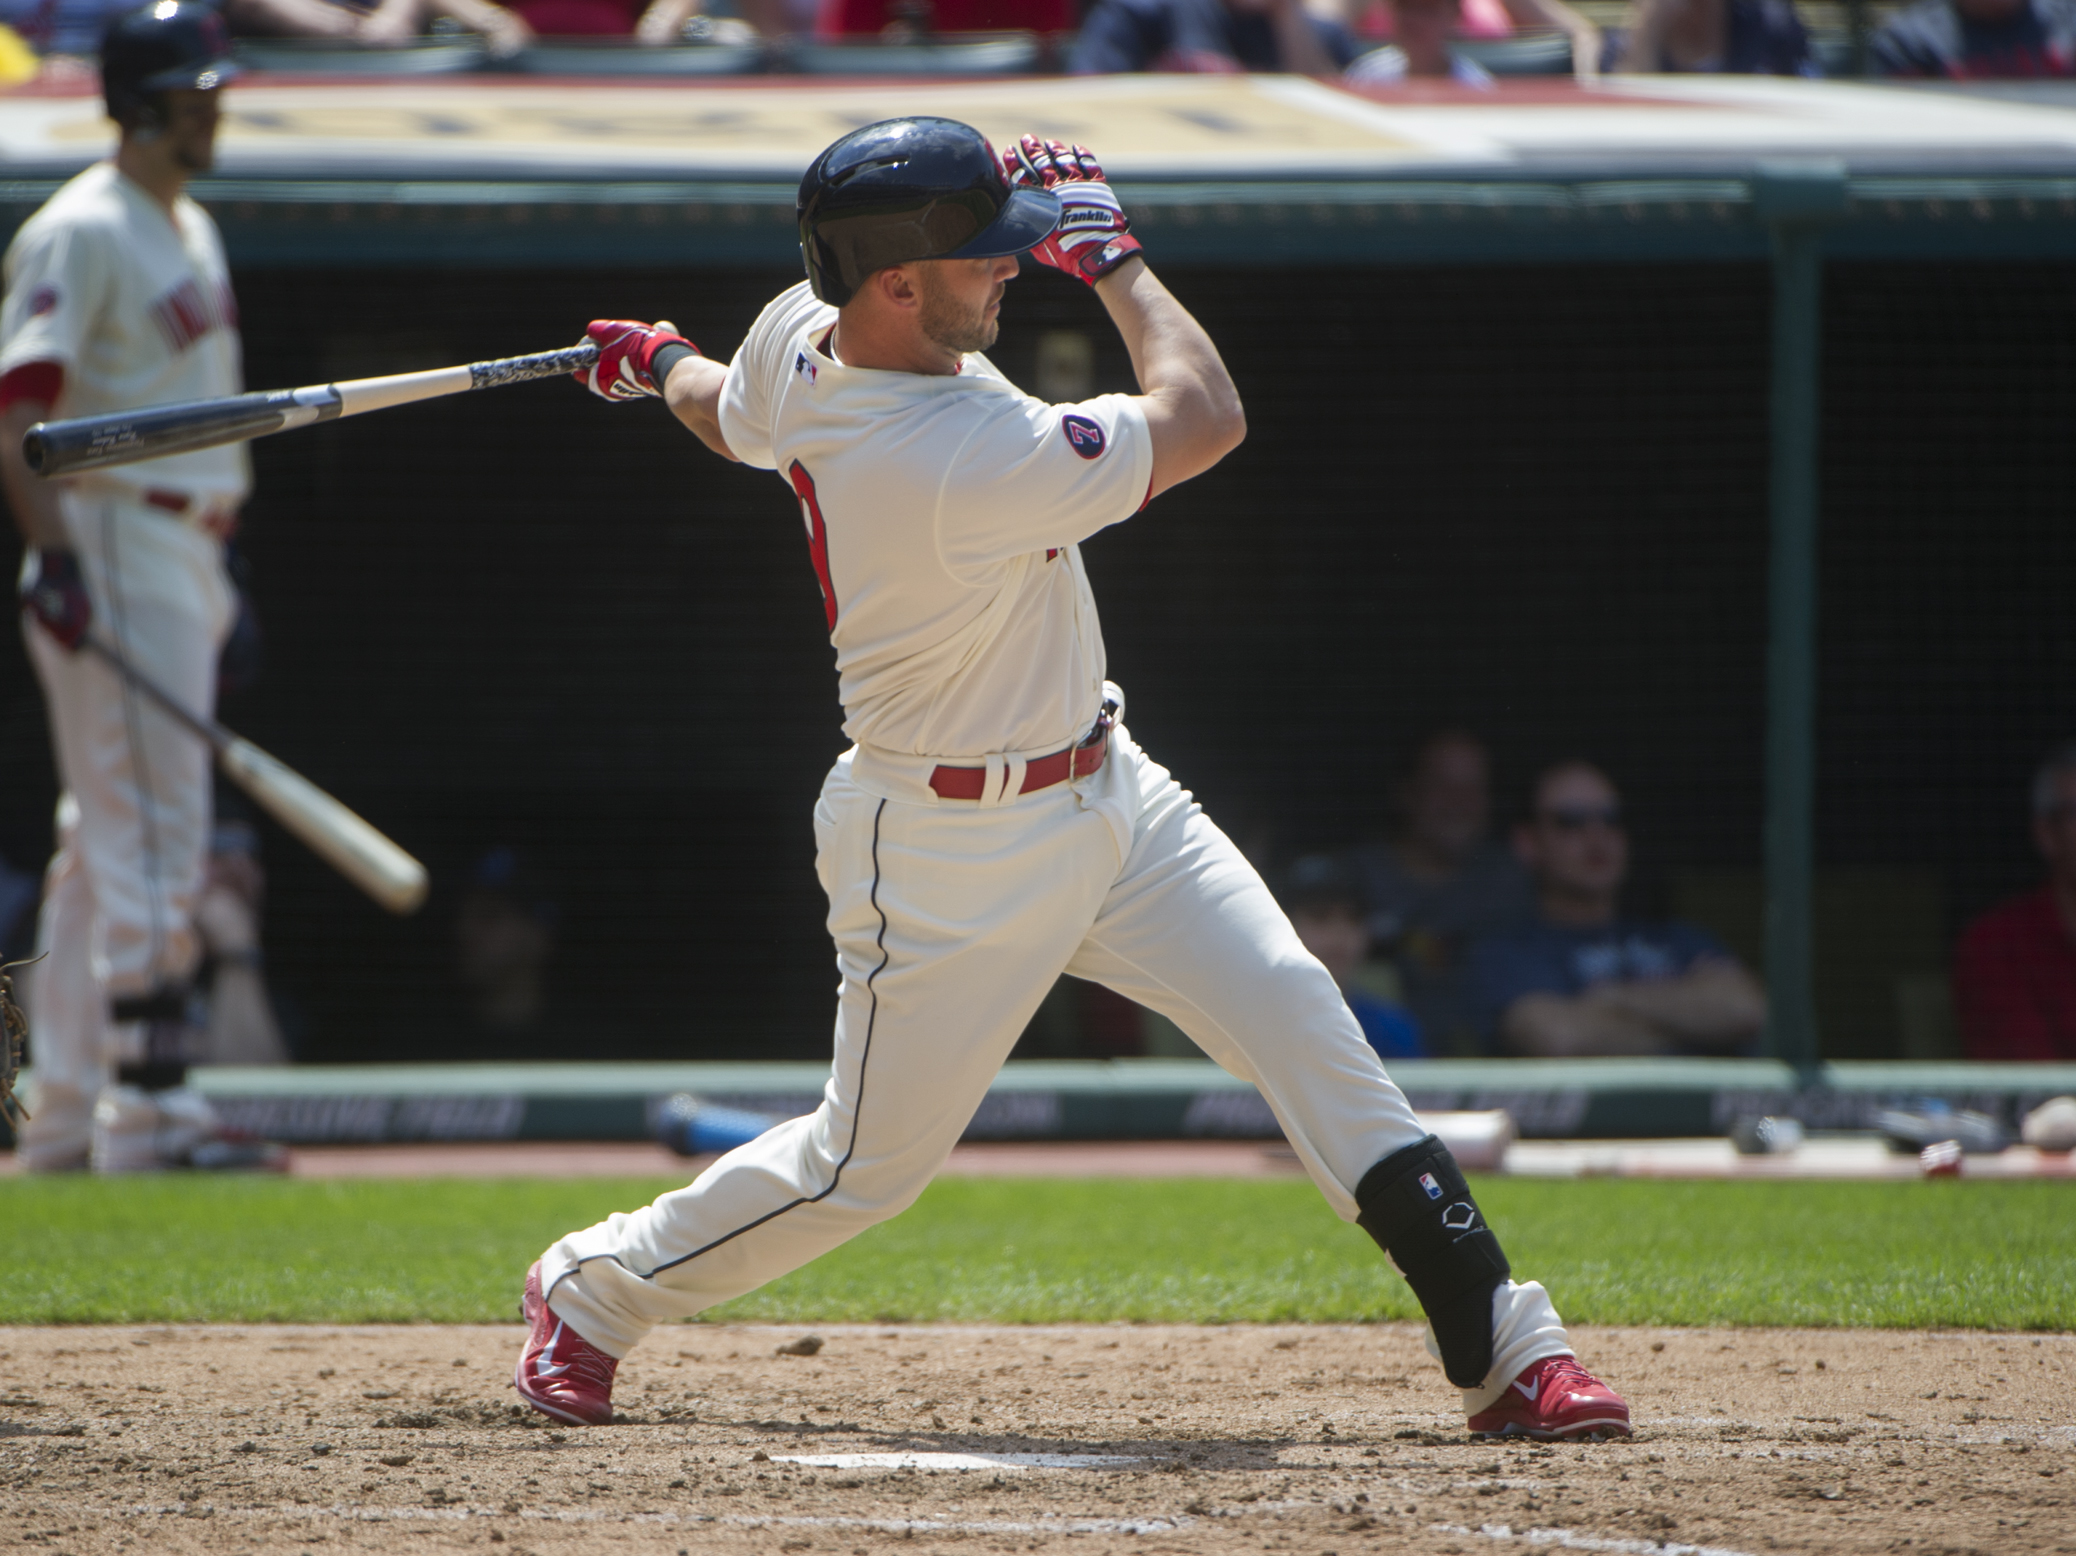 Cleveland Indians' Ryan Rayburn watches his two-run double off Toronto Blue Jays' Jeff Francis during the fifth inning of a baseball game in Cleveland, Sunday, May 3, 2015. (AP Photo/Phil Long)